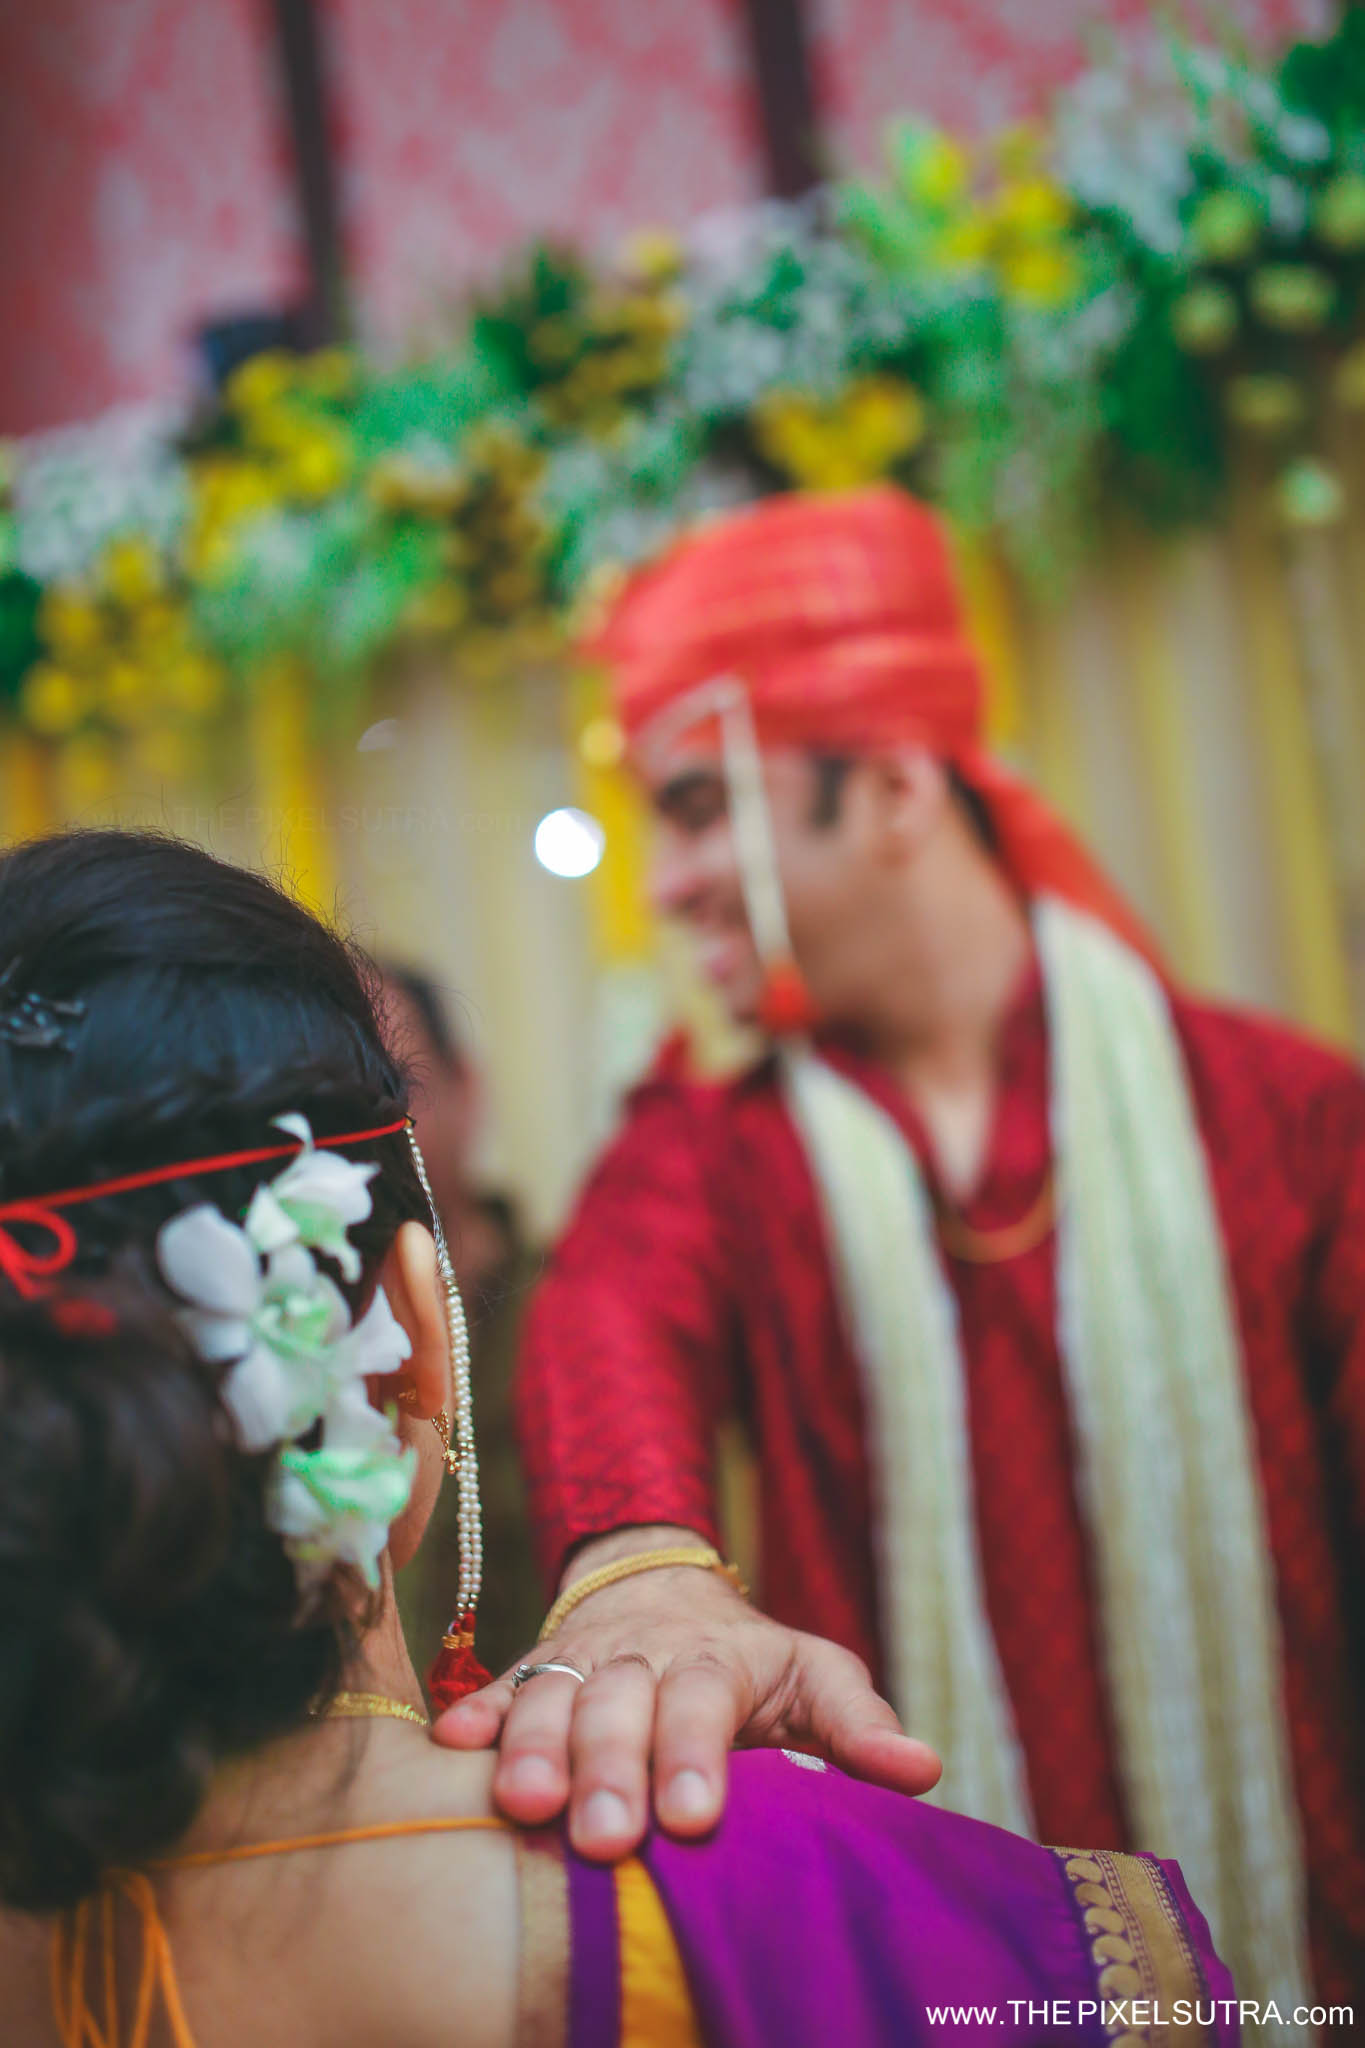 The Pixel Sutra Nachiket x Priyanka Candid Wedding photographer Mumbai Best  (32).jpg